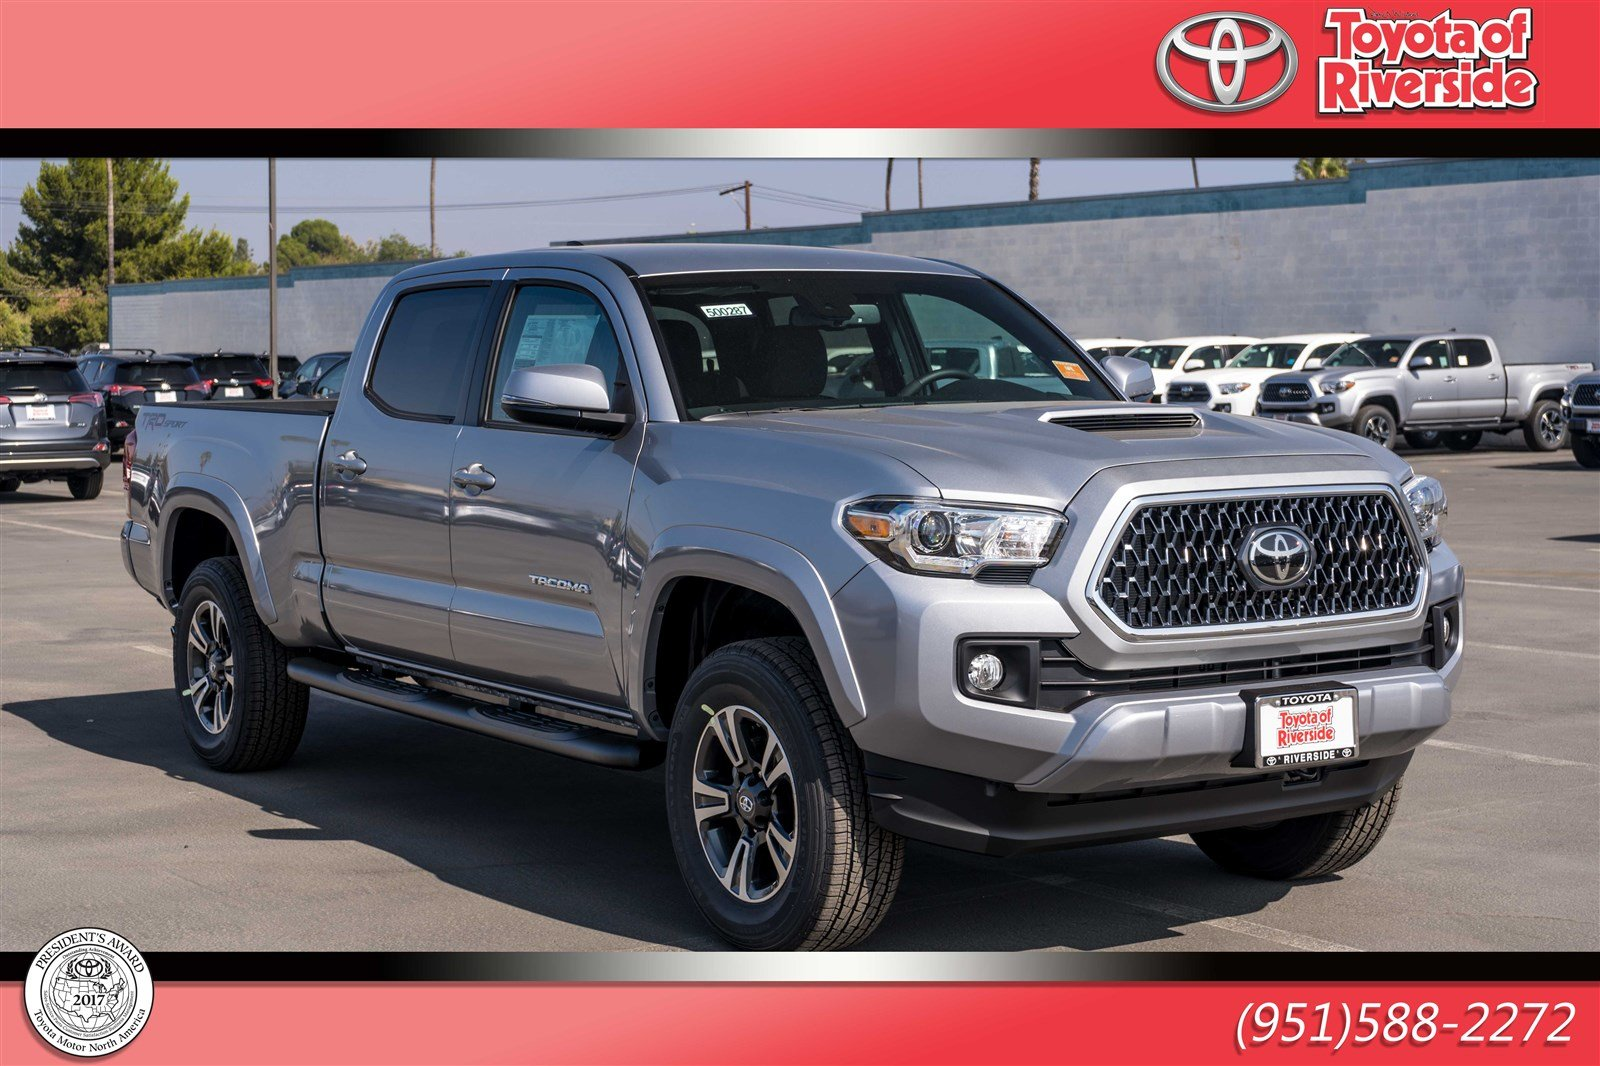 2019 Toyota Tacoma >> New 2019 Toyota Tacoma Trd Sport Double Cab In Riverside 00500287